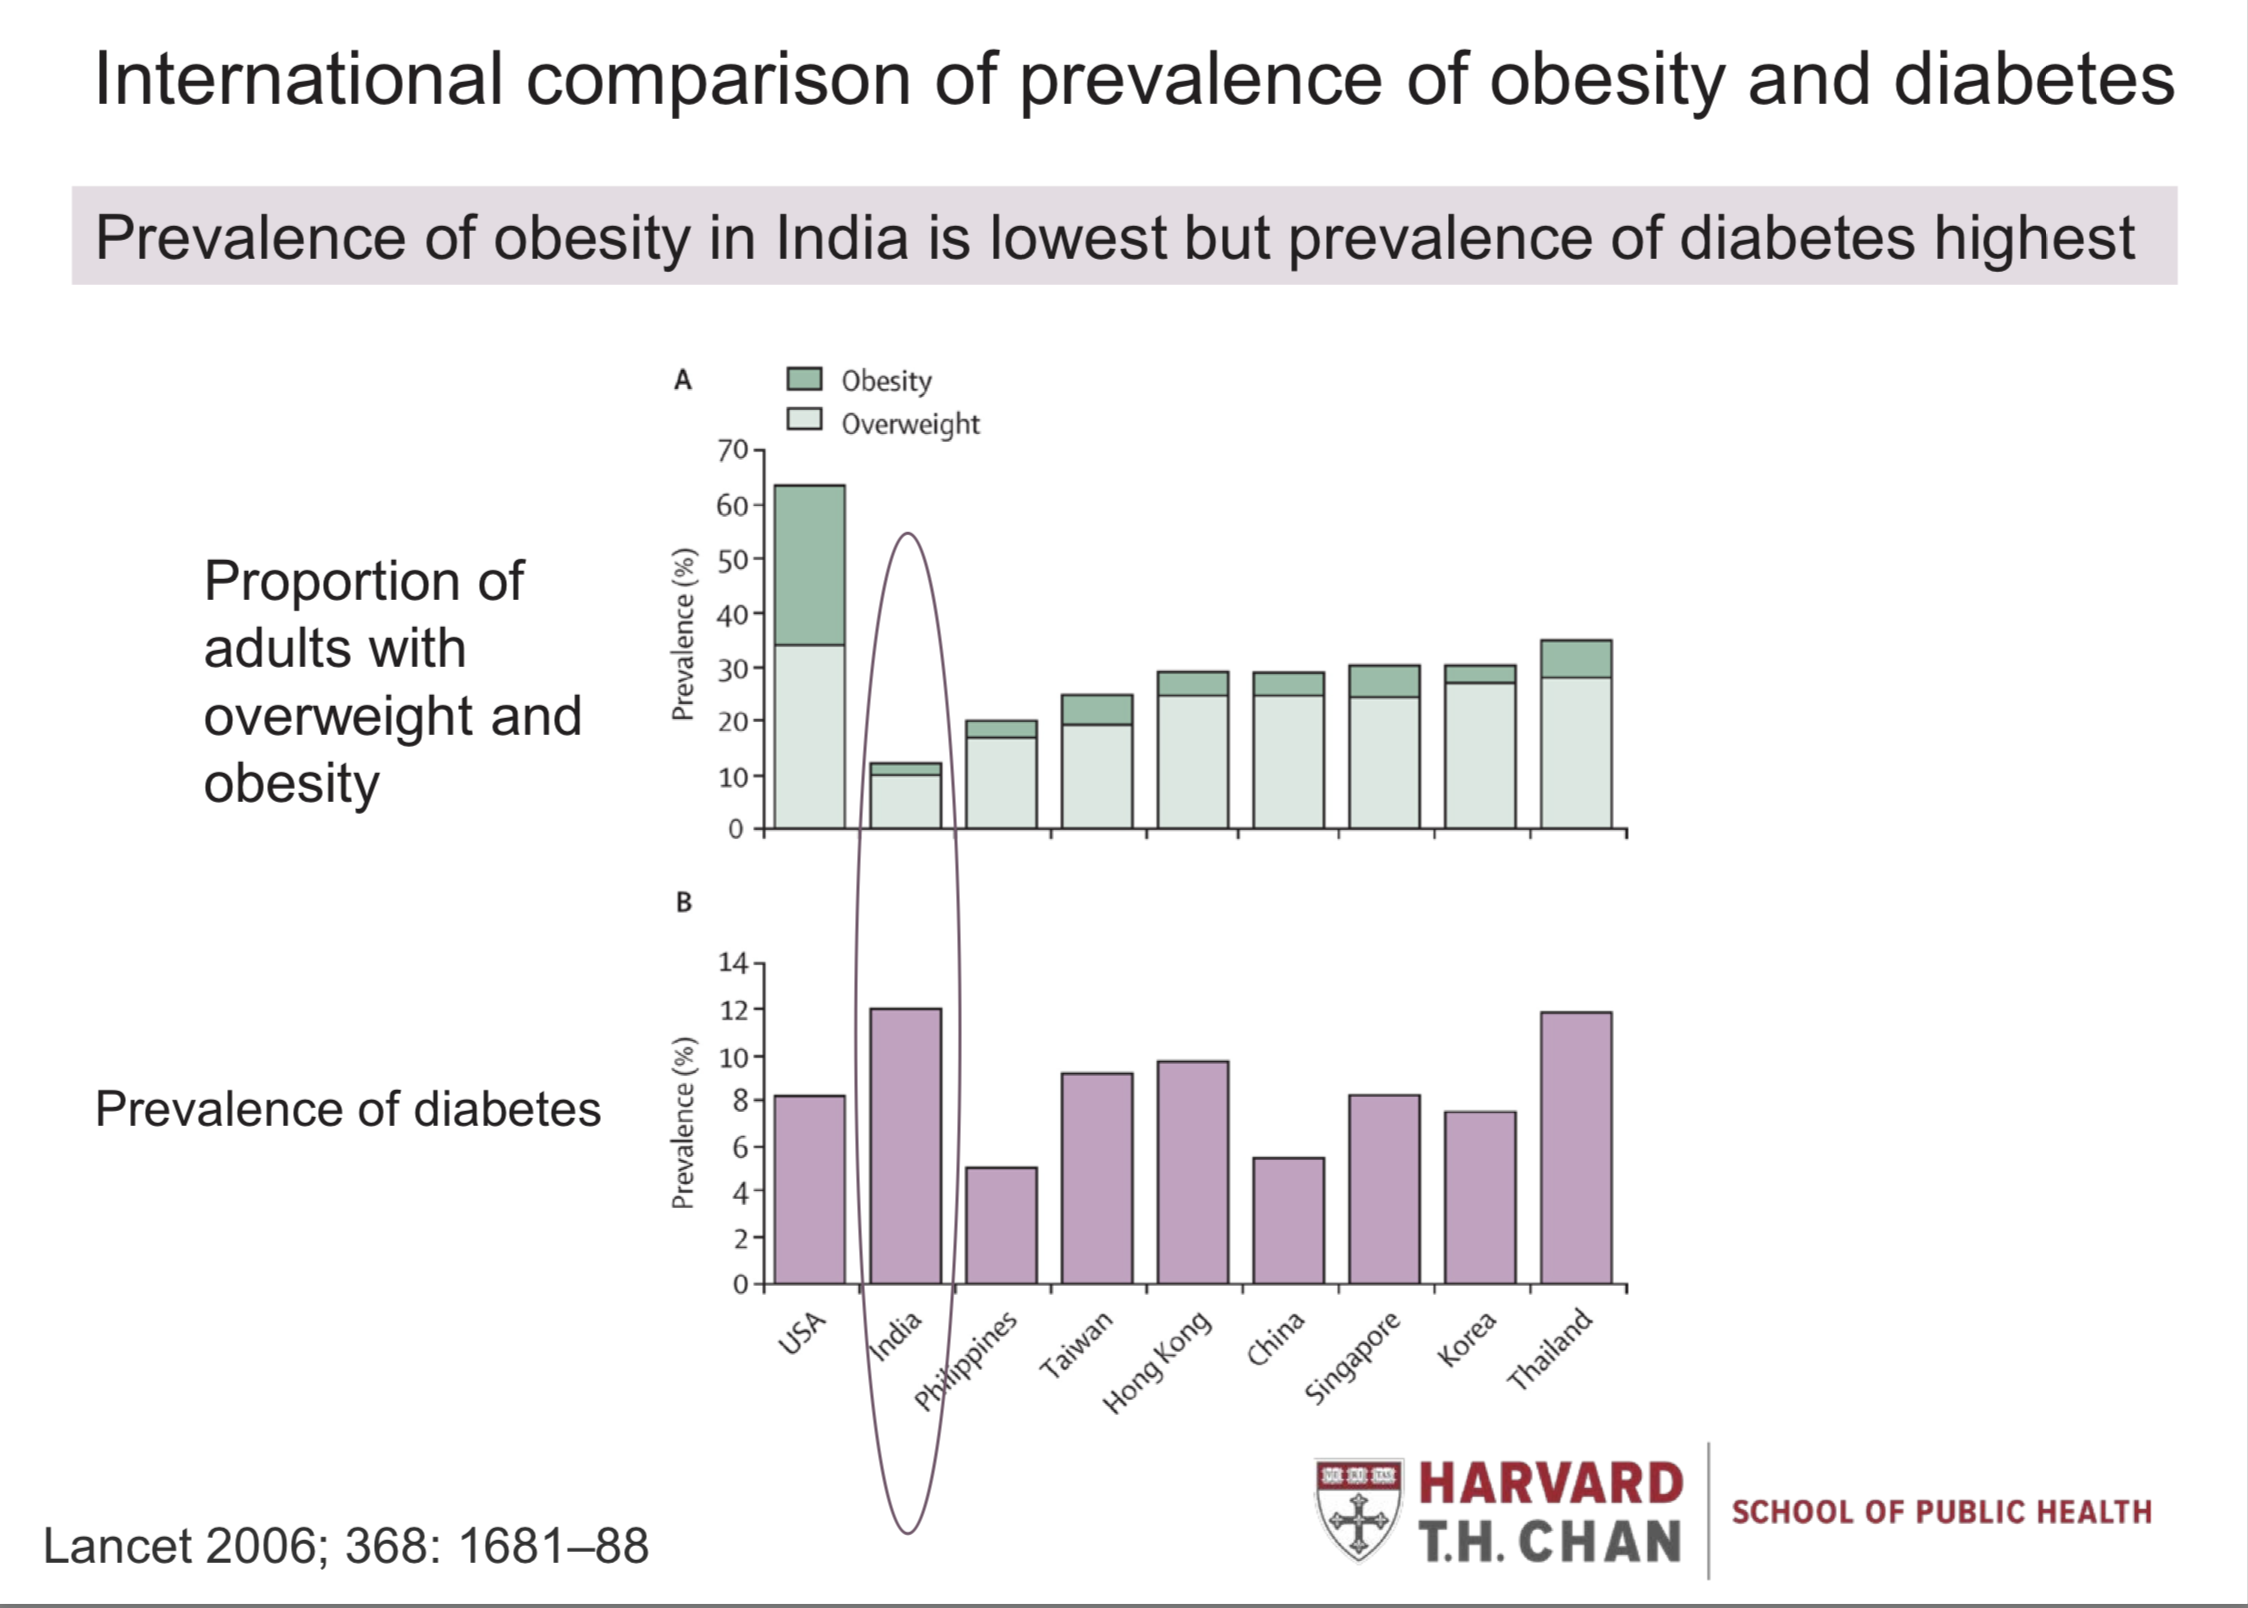 Obesity in Asian Population, a report from Harvard T.H Chan School of Public Health